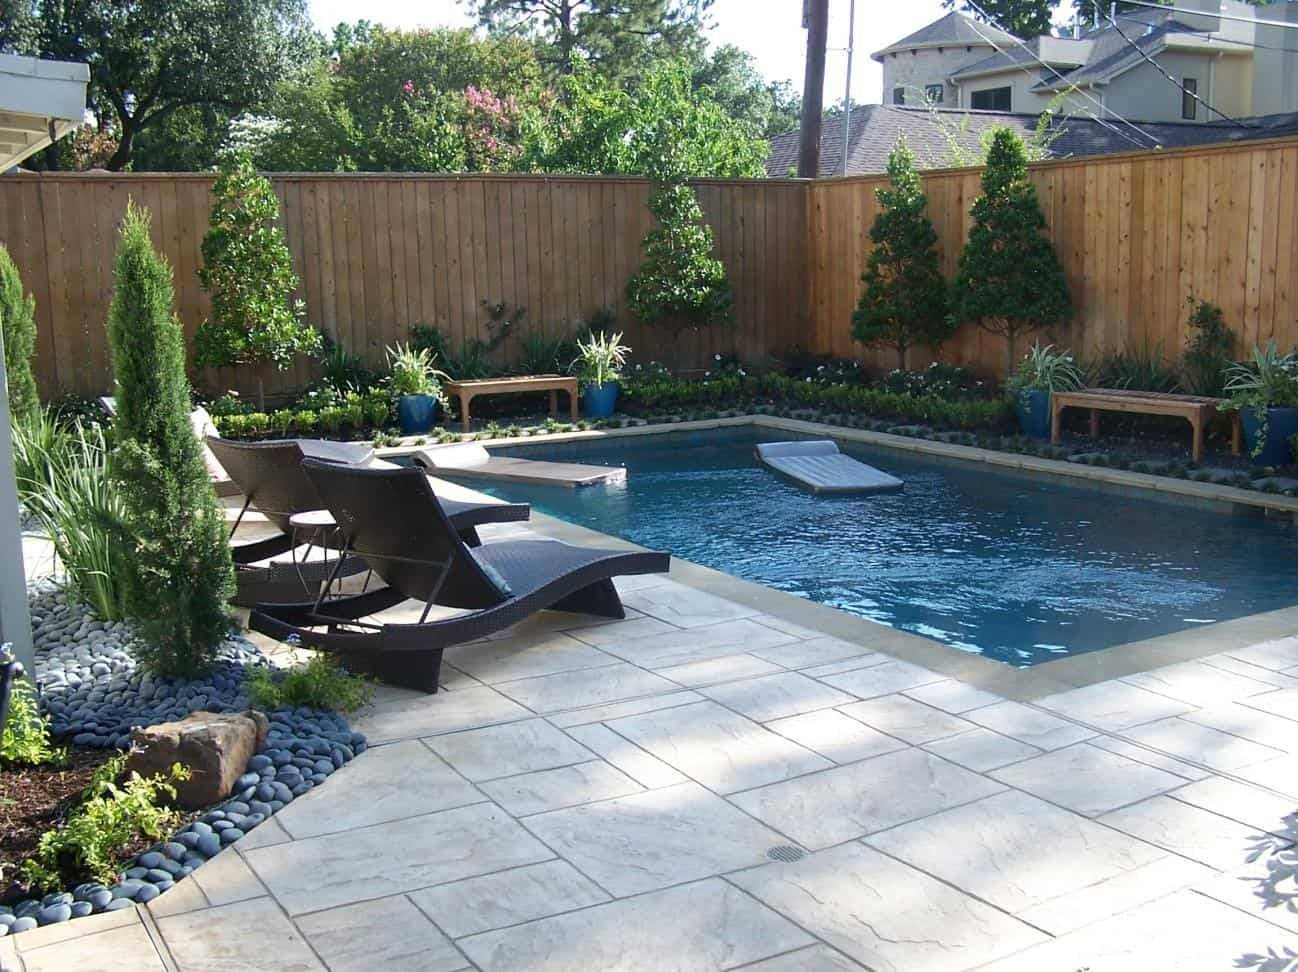 Limited Space Pool – Pool builder and Landscape company